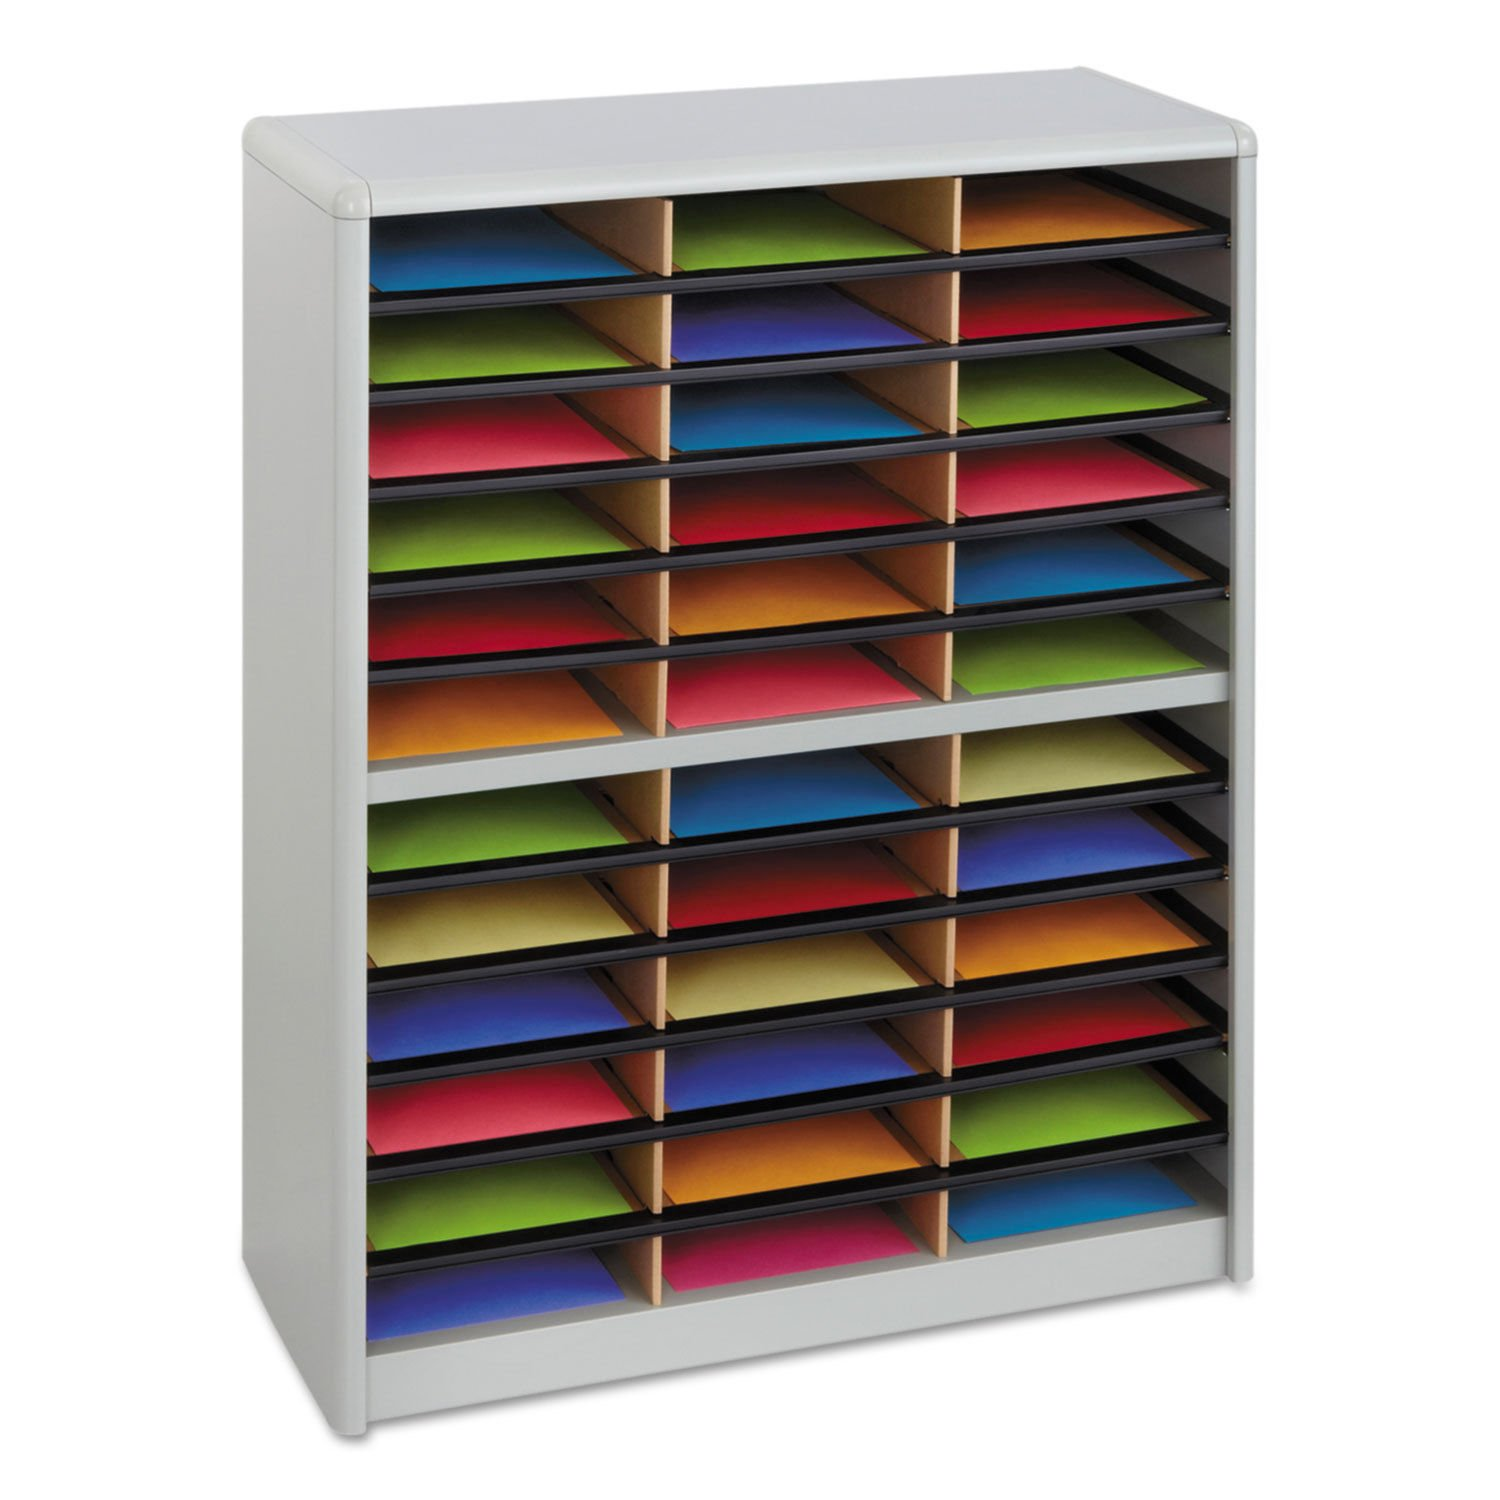 7121GR Value Sorter Literature Organizer, 36 Compartment, Gray NEW